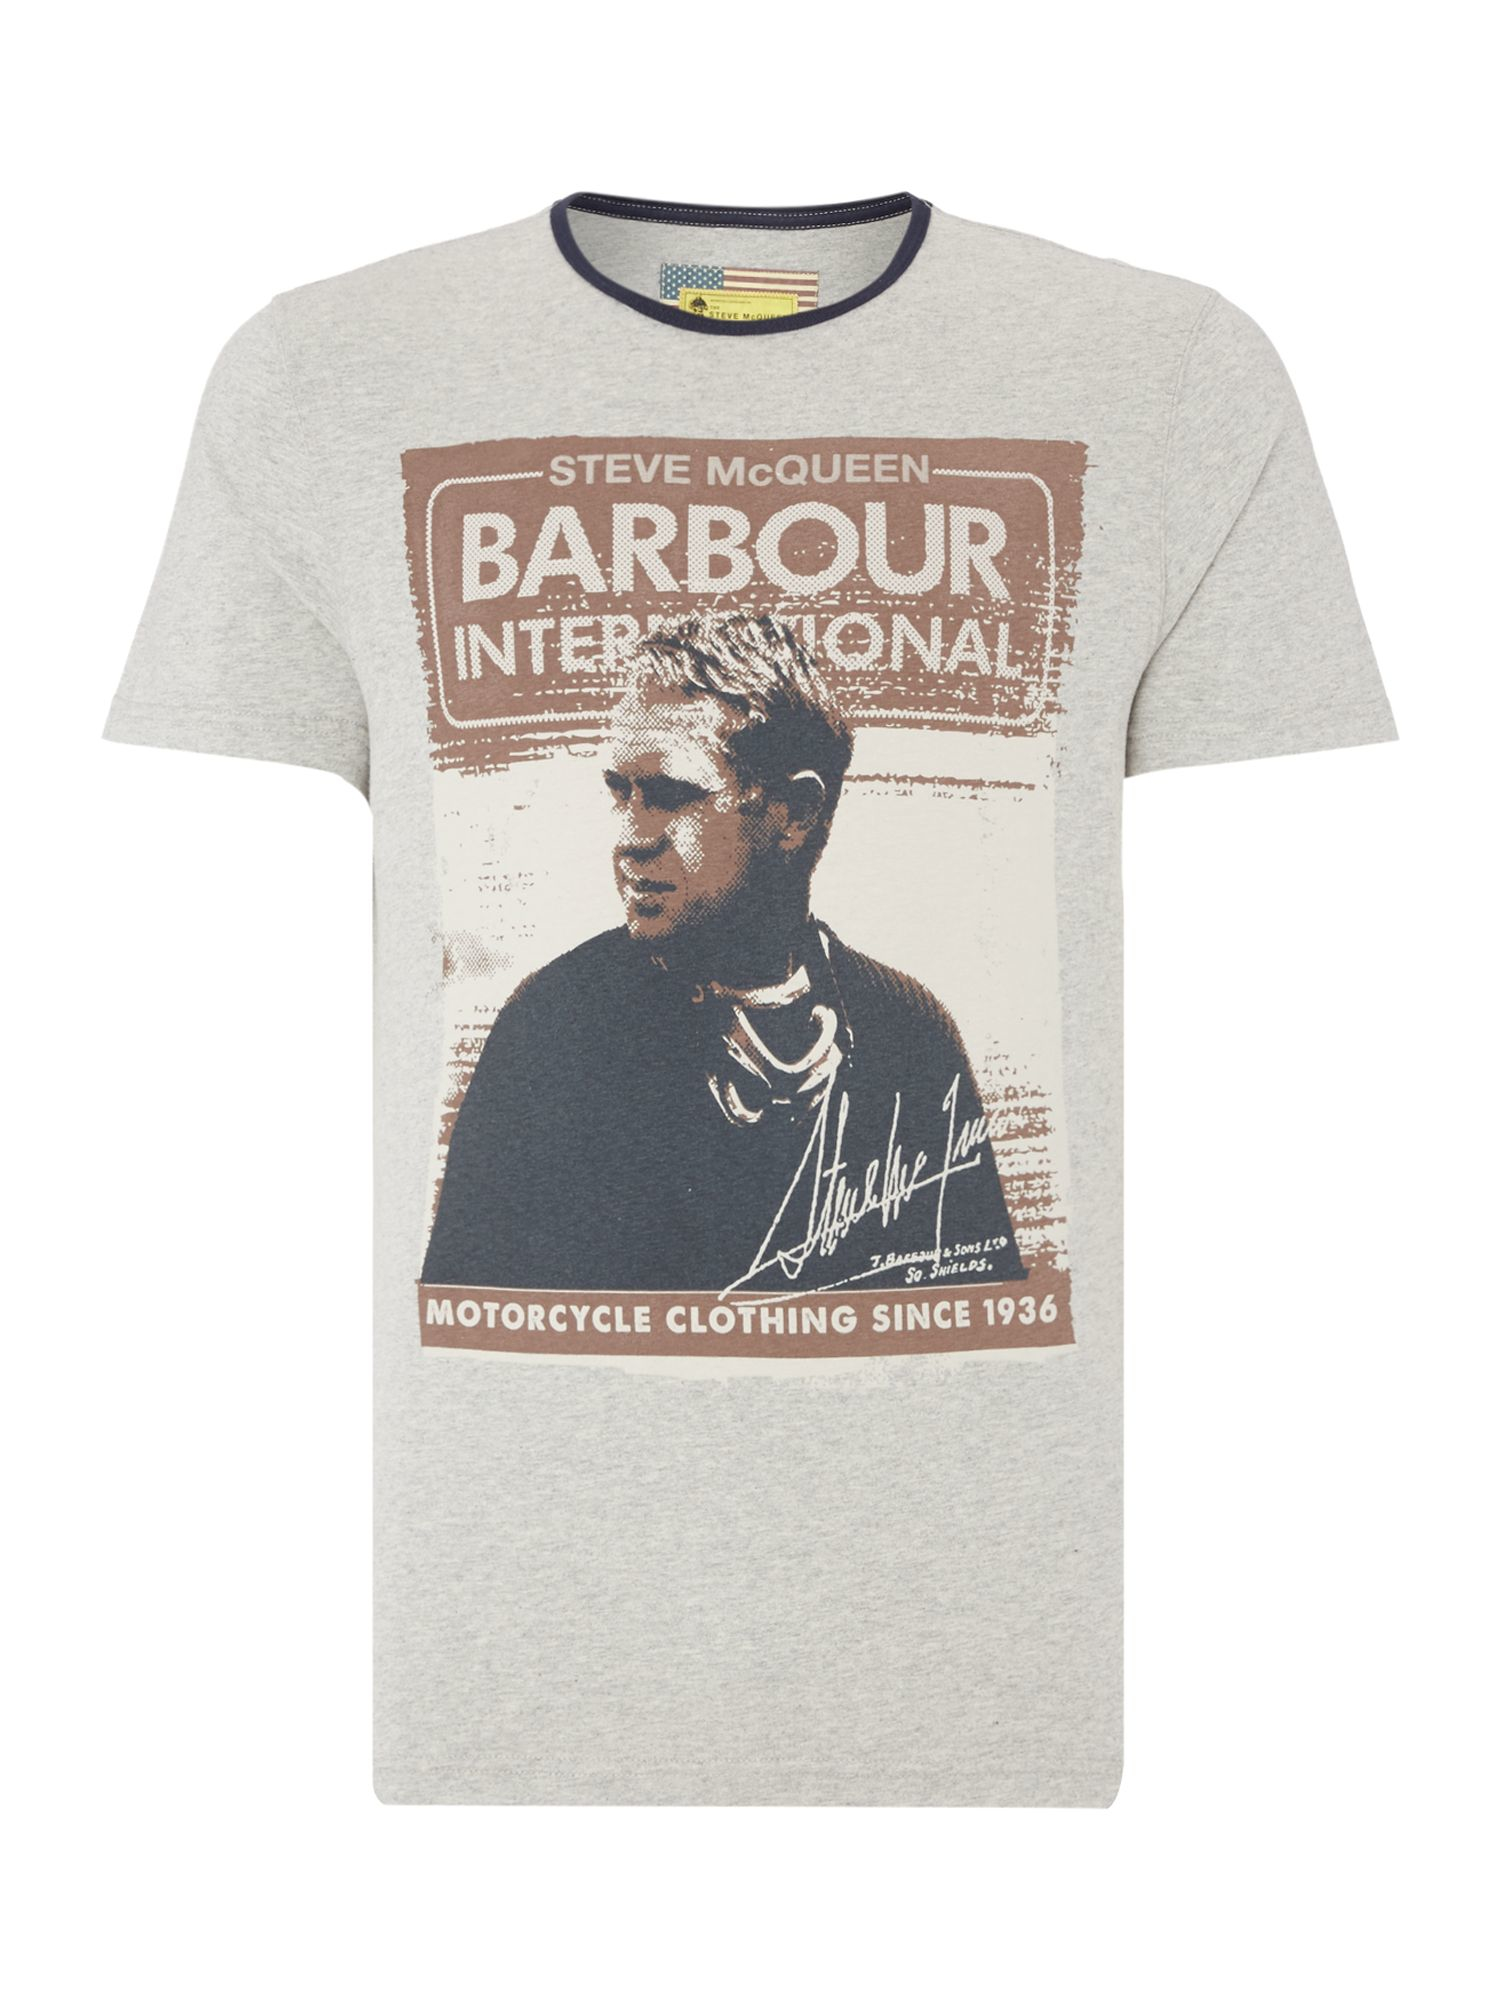 barbour steve mcqueen short sleeved fowler t shirt in gray for men lyst. Black Bedroom Furniture Sets. Home Design Ideas